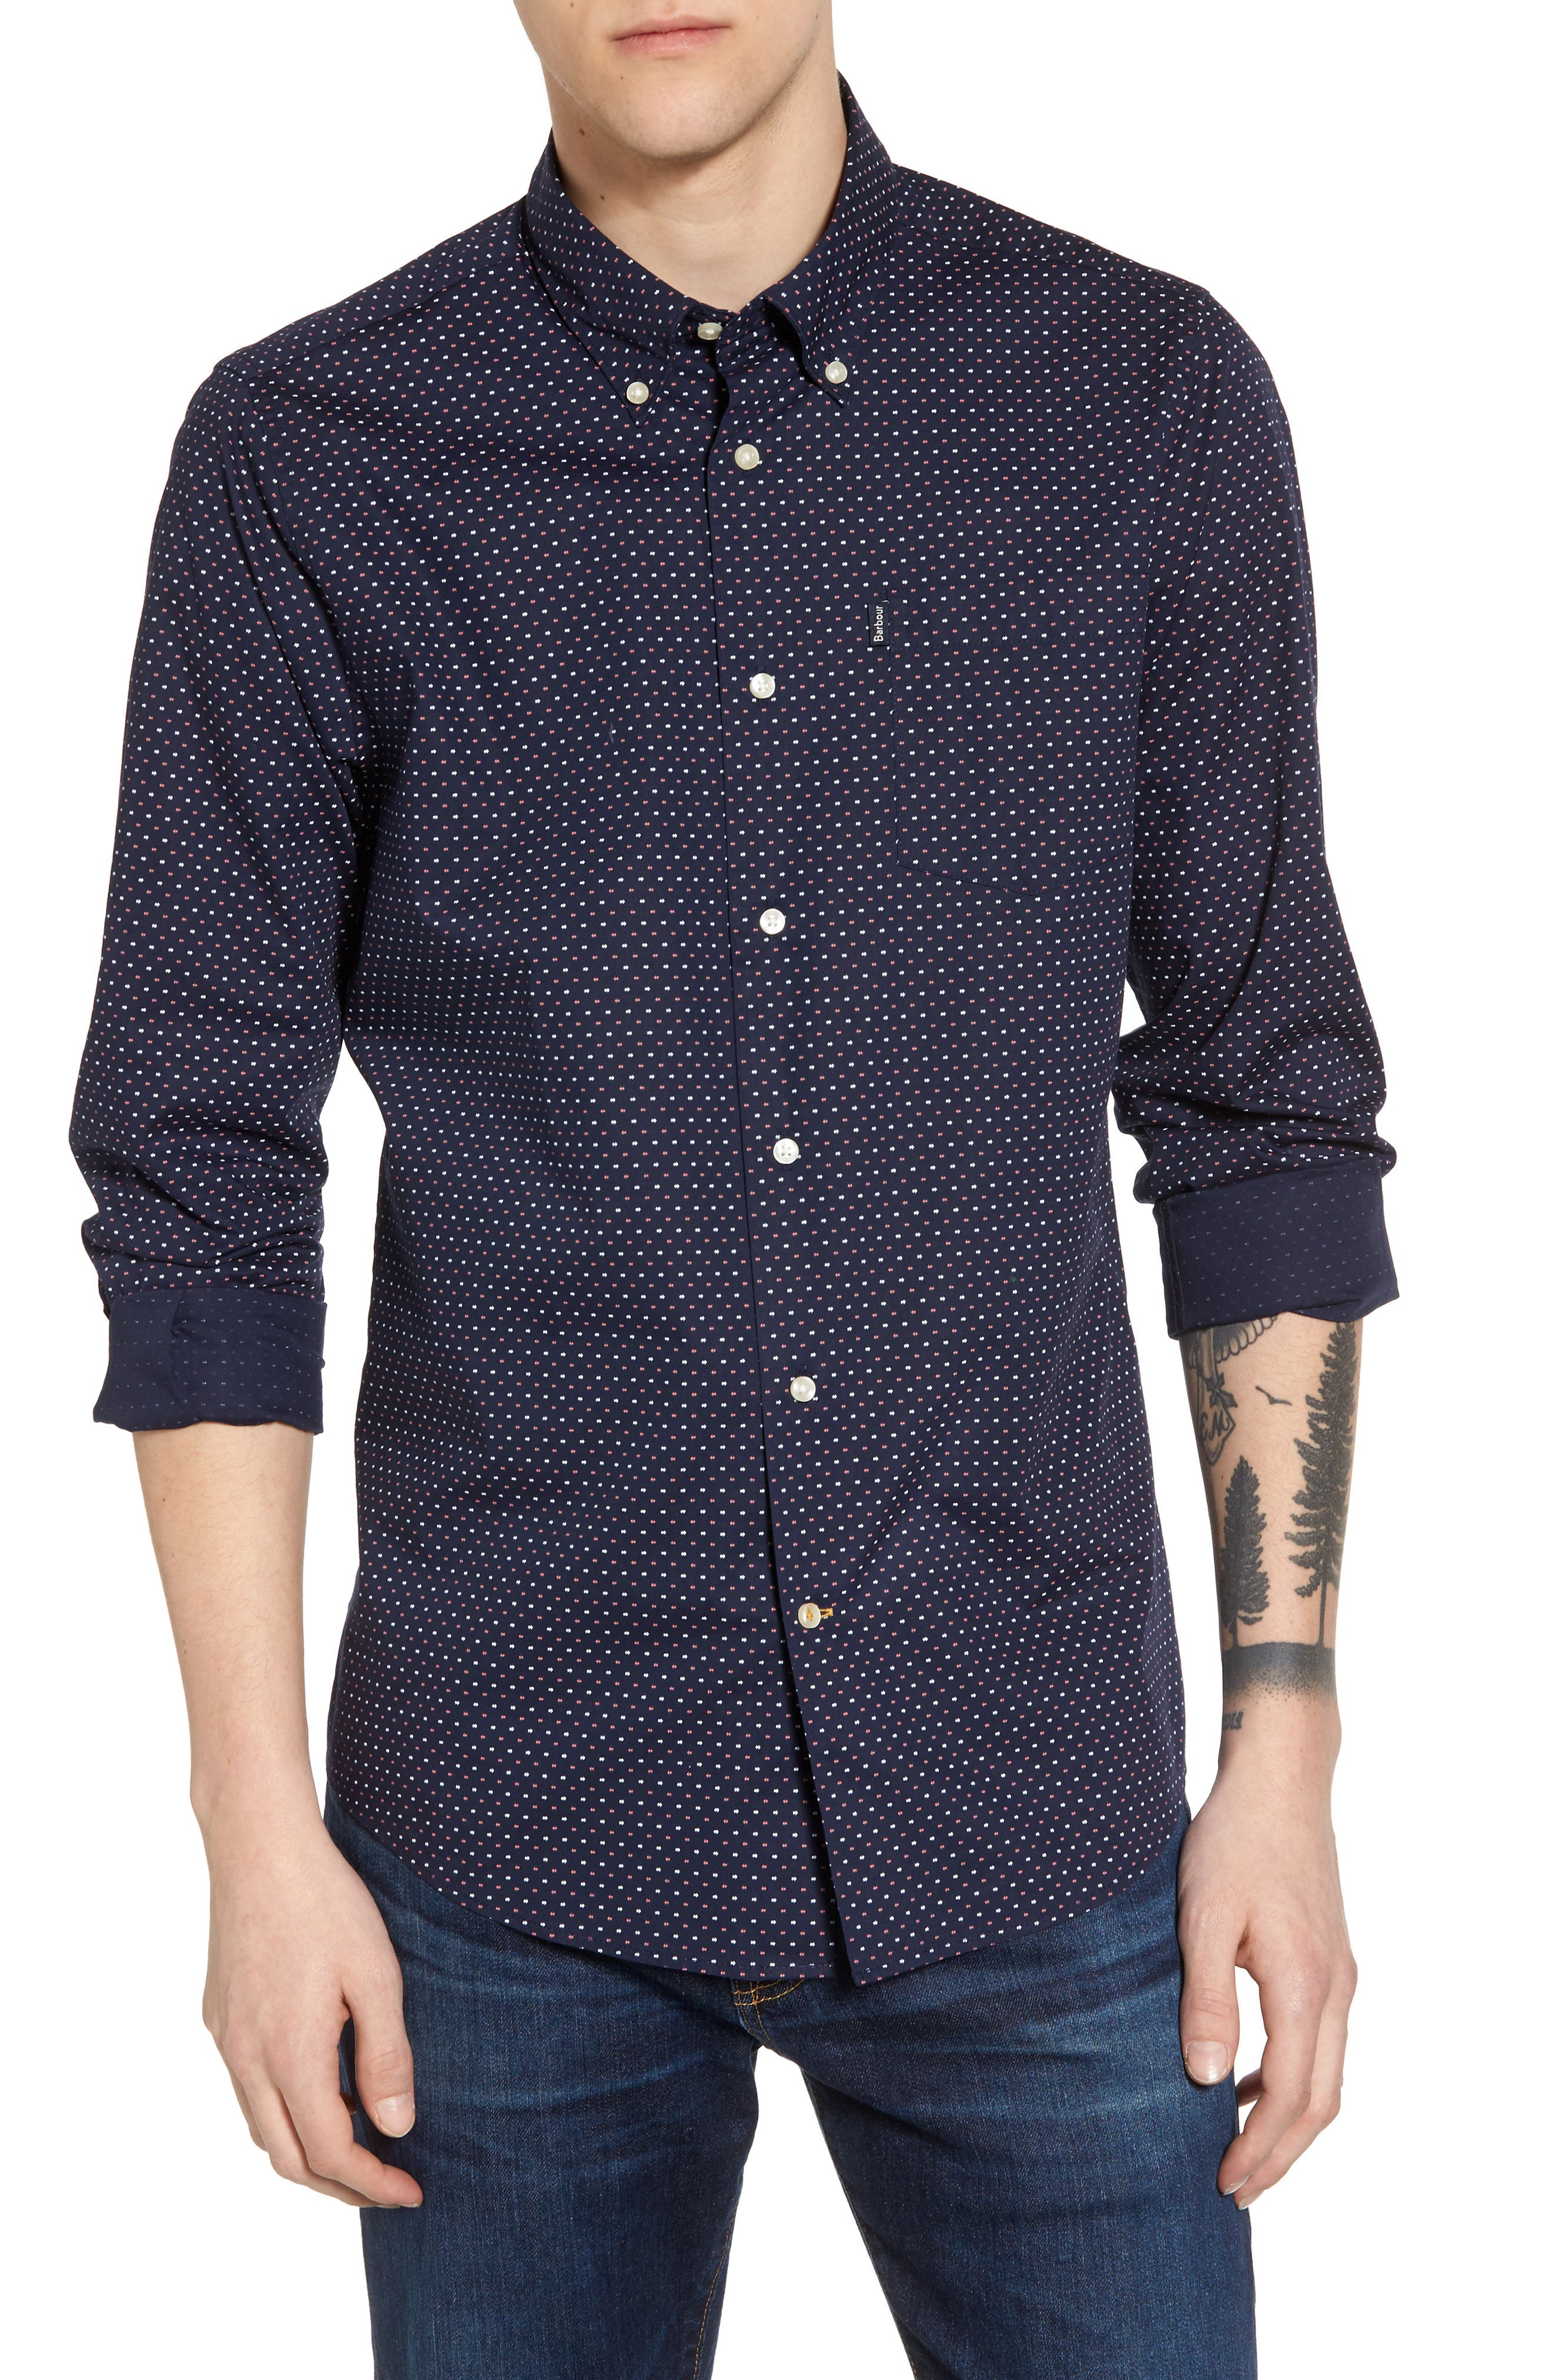 Cullen Trim Fit Print Sport Shirt,                         Main,                         color, Navy